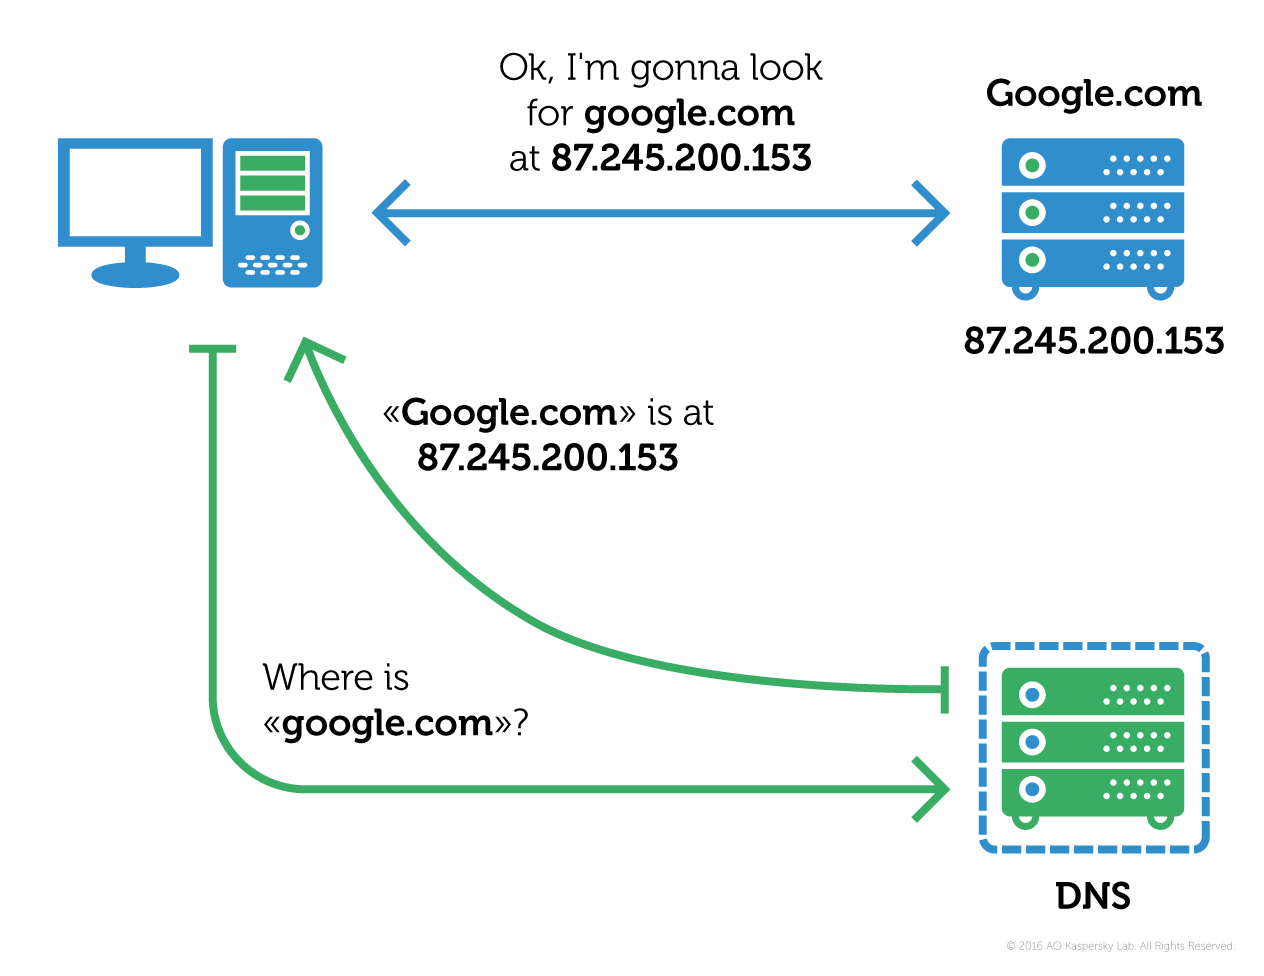 How the DNS system works (source: Kaspersky Labs)